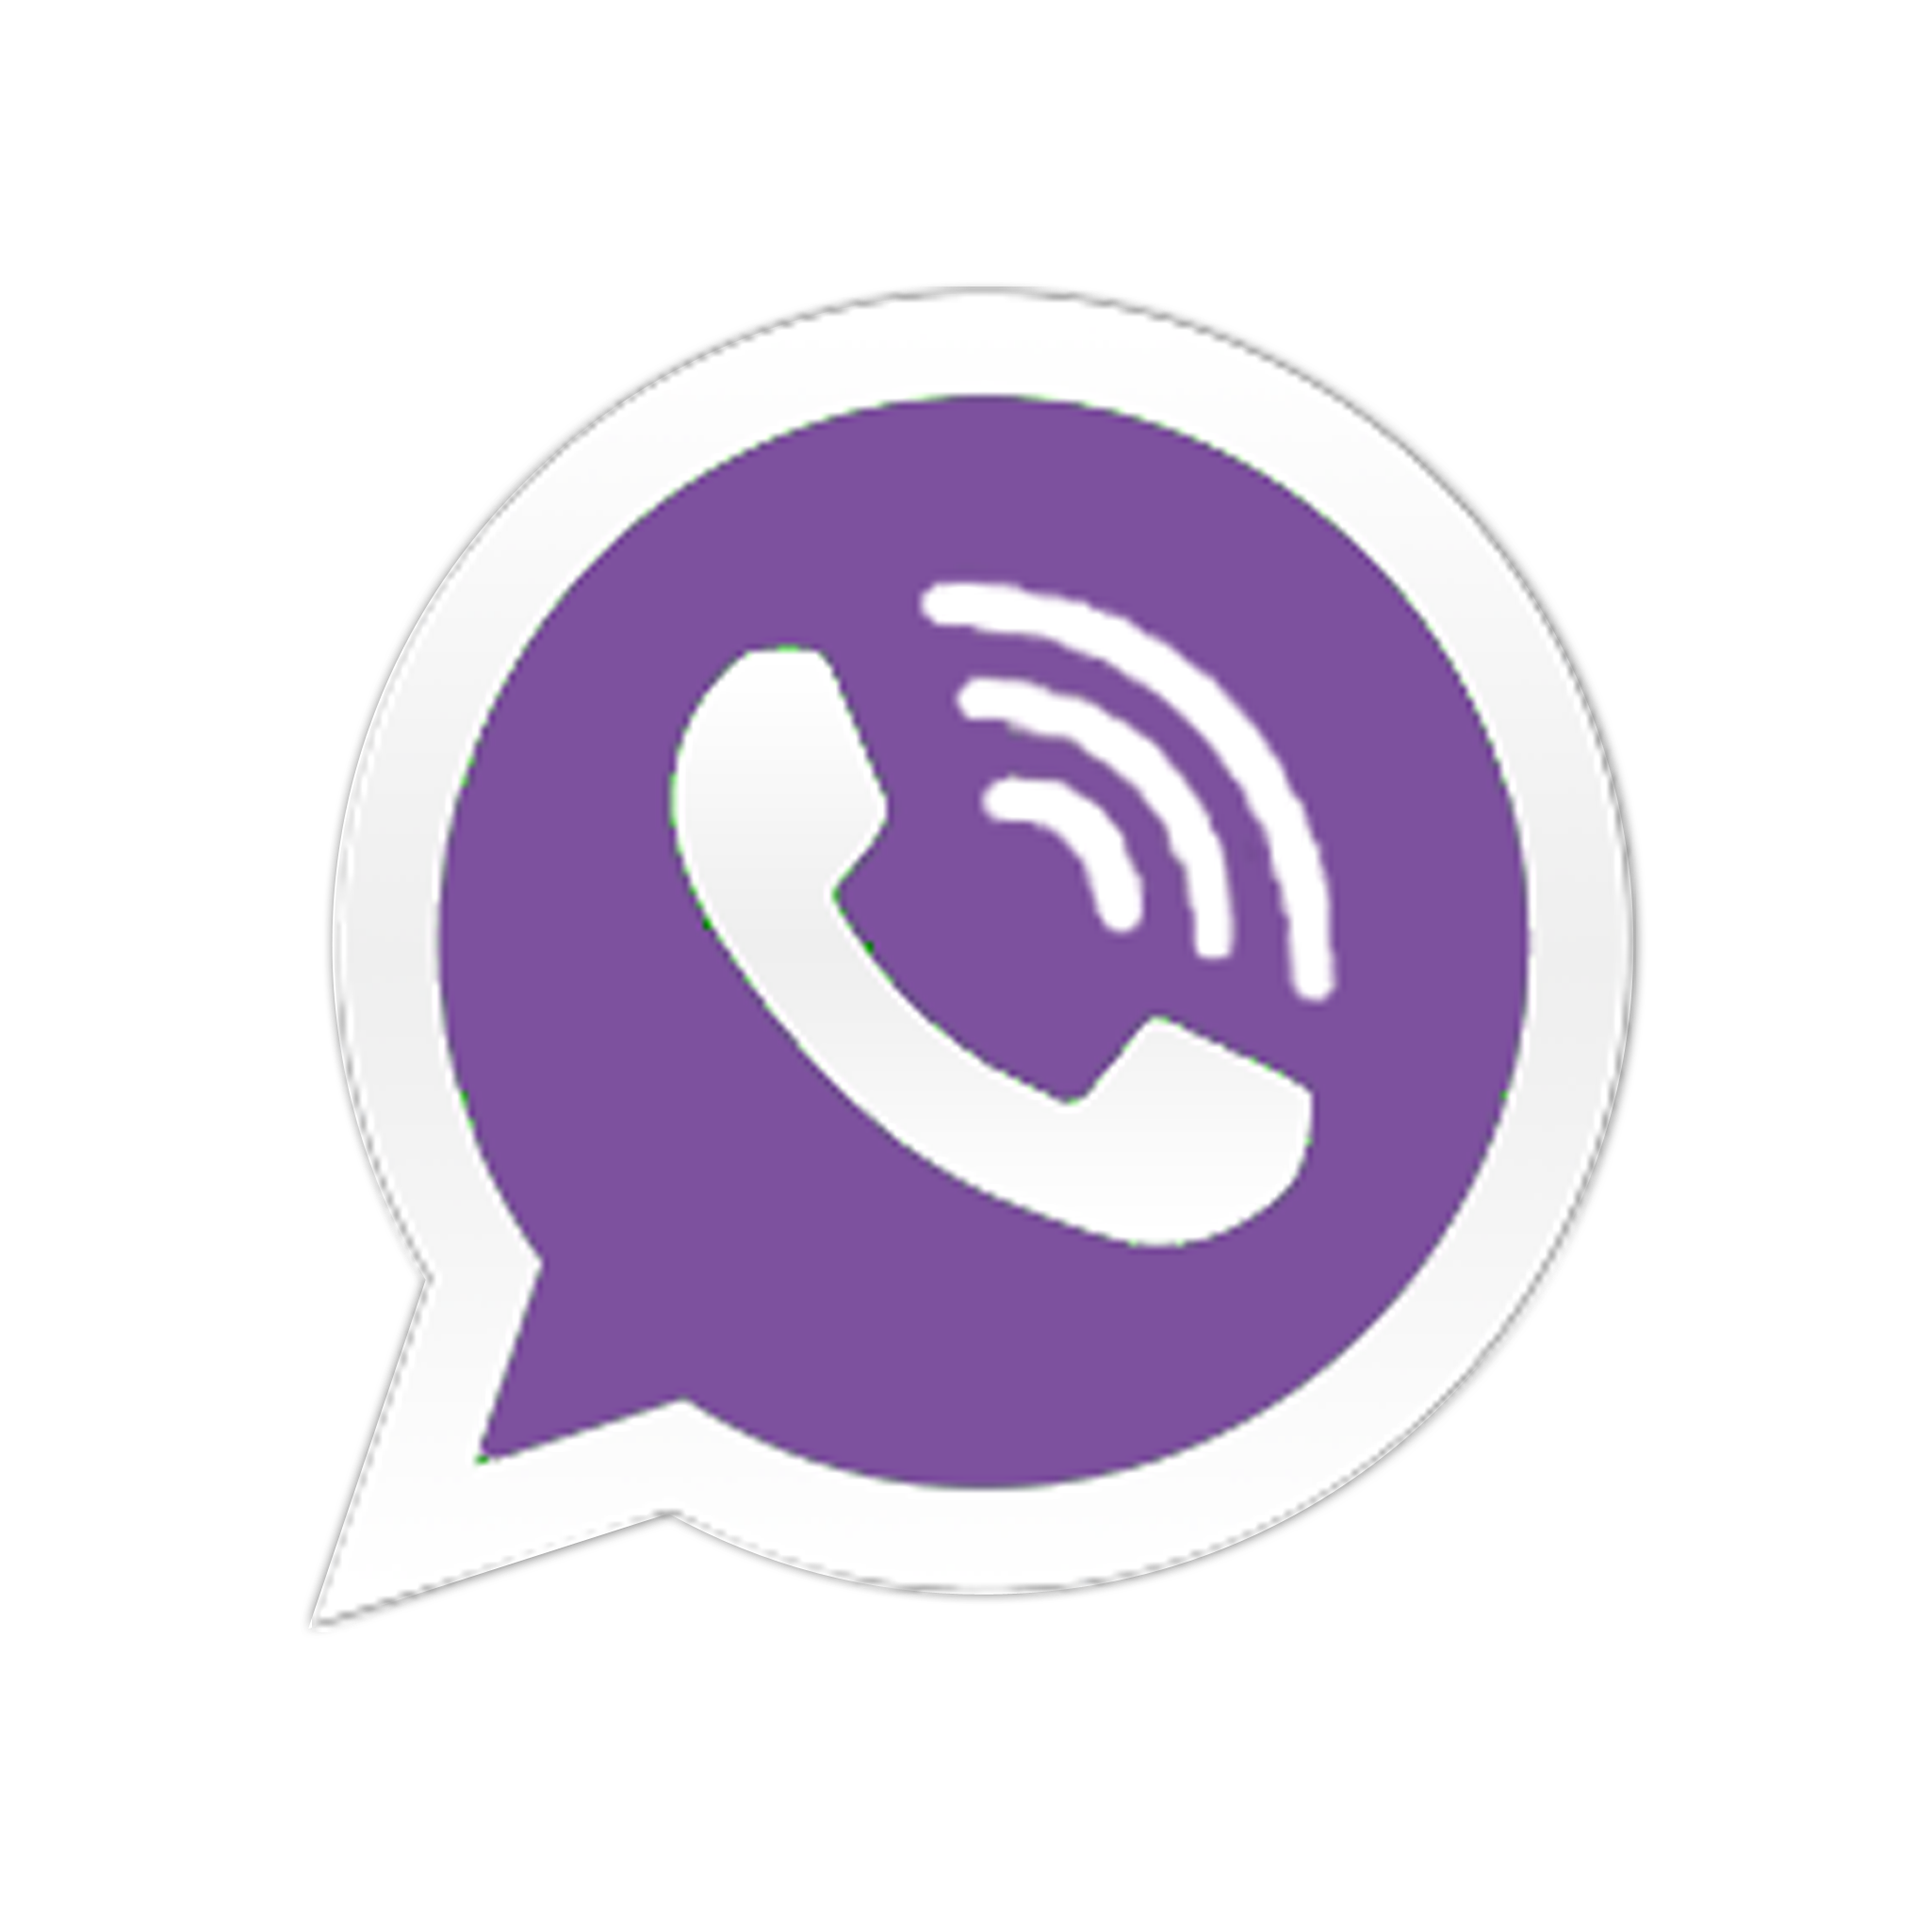 Messaging Viber Logo Purple Photo #48160.